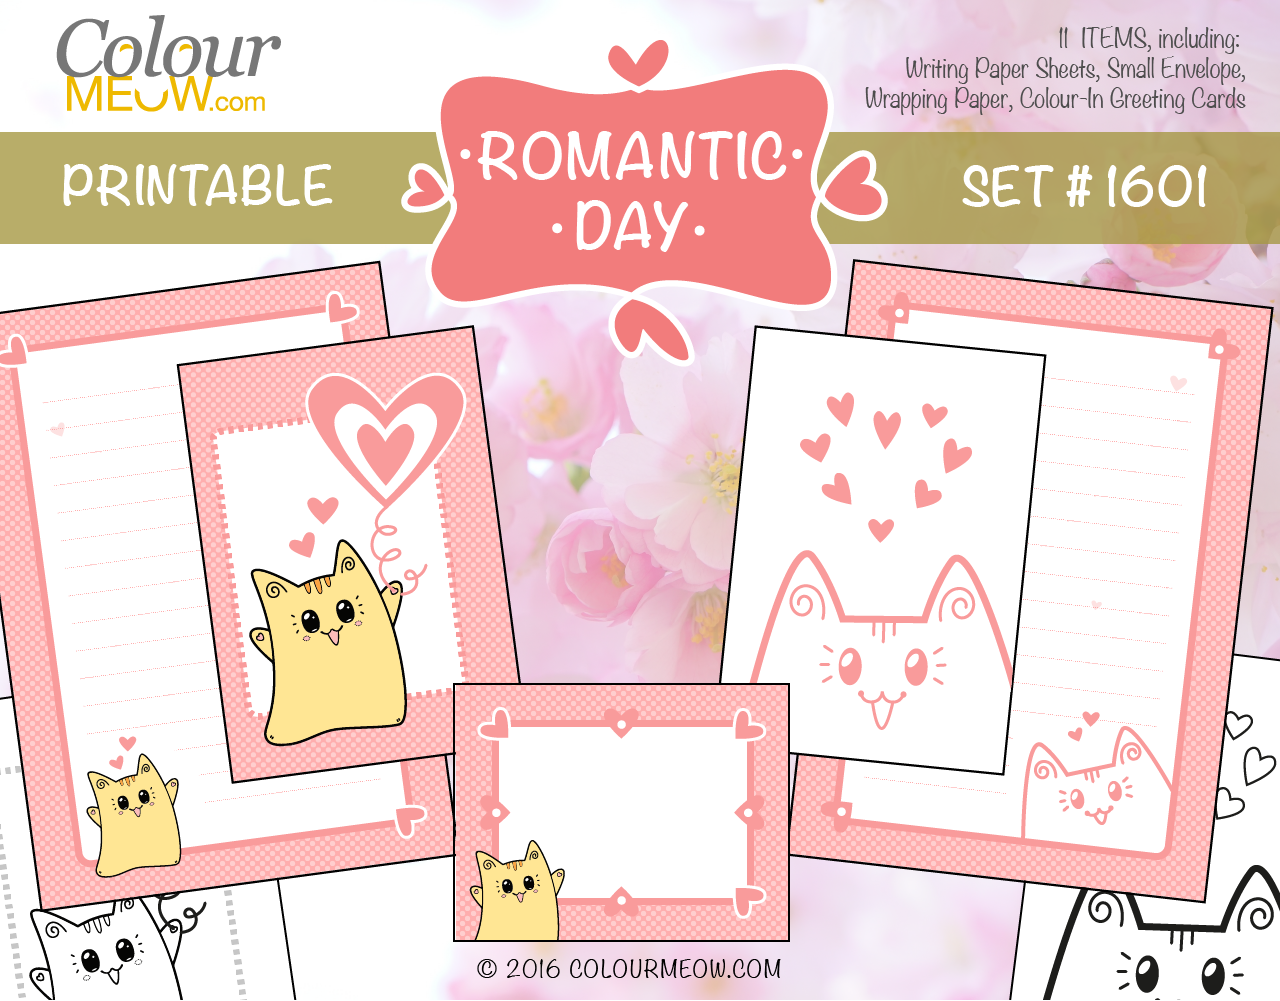 DIY Printable Paper Set #1601 - Romantic Day (11 Pages)